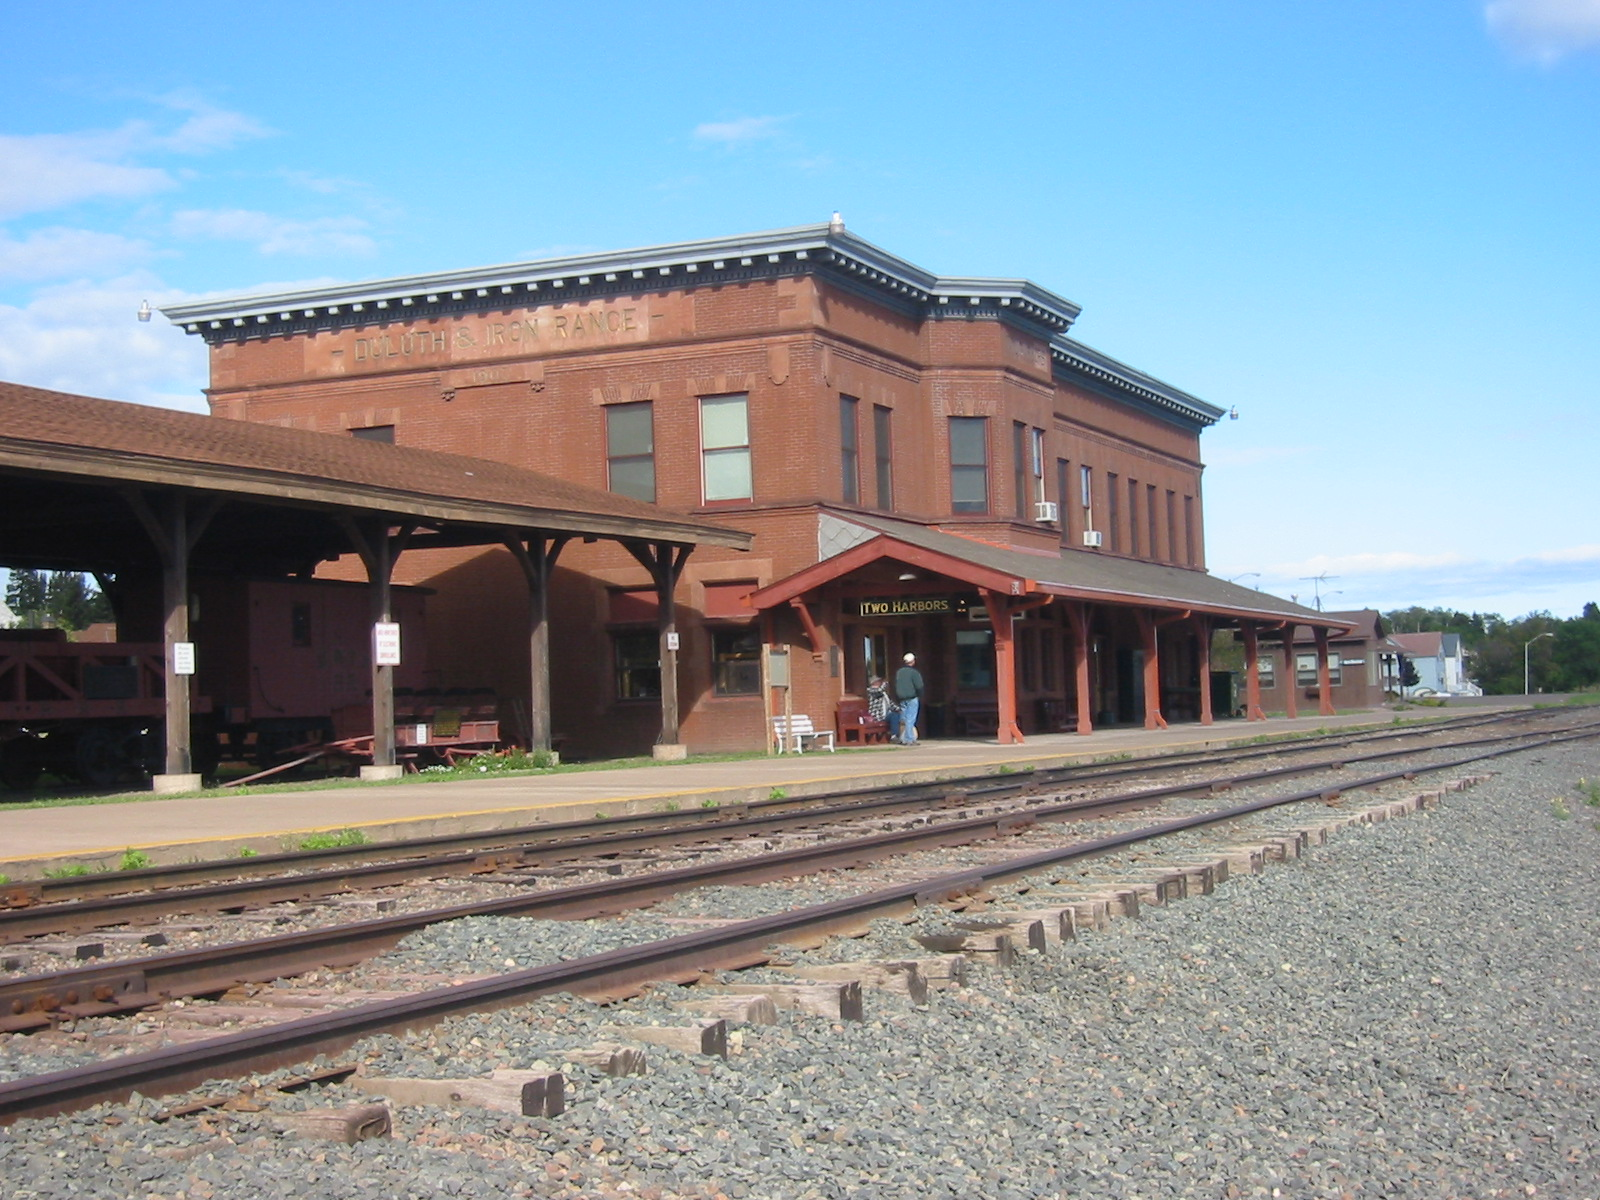 The Lake County Historical Society Depot Museum, formerly the Duluth and Iron Range Railroad Company Depot.